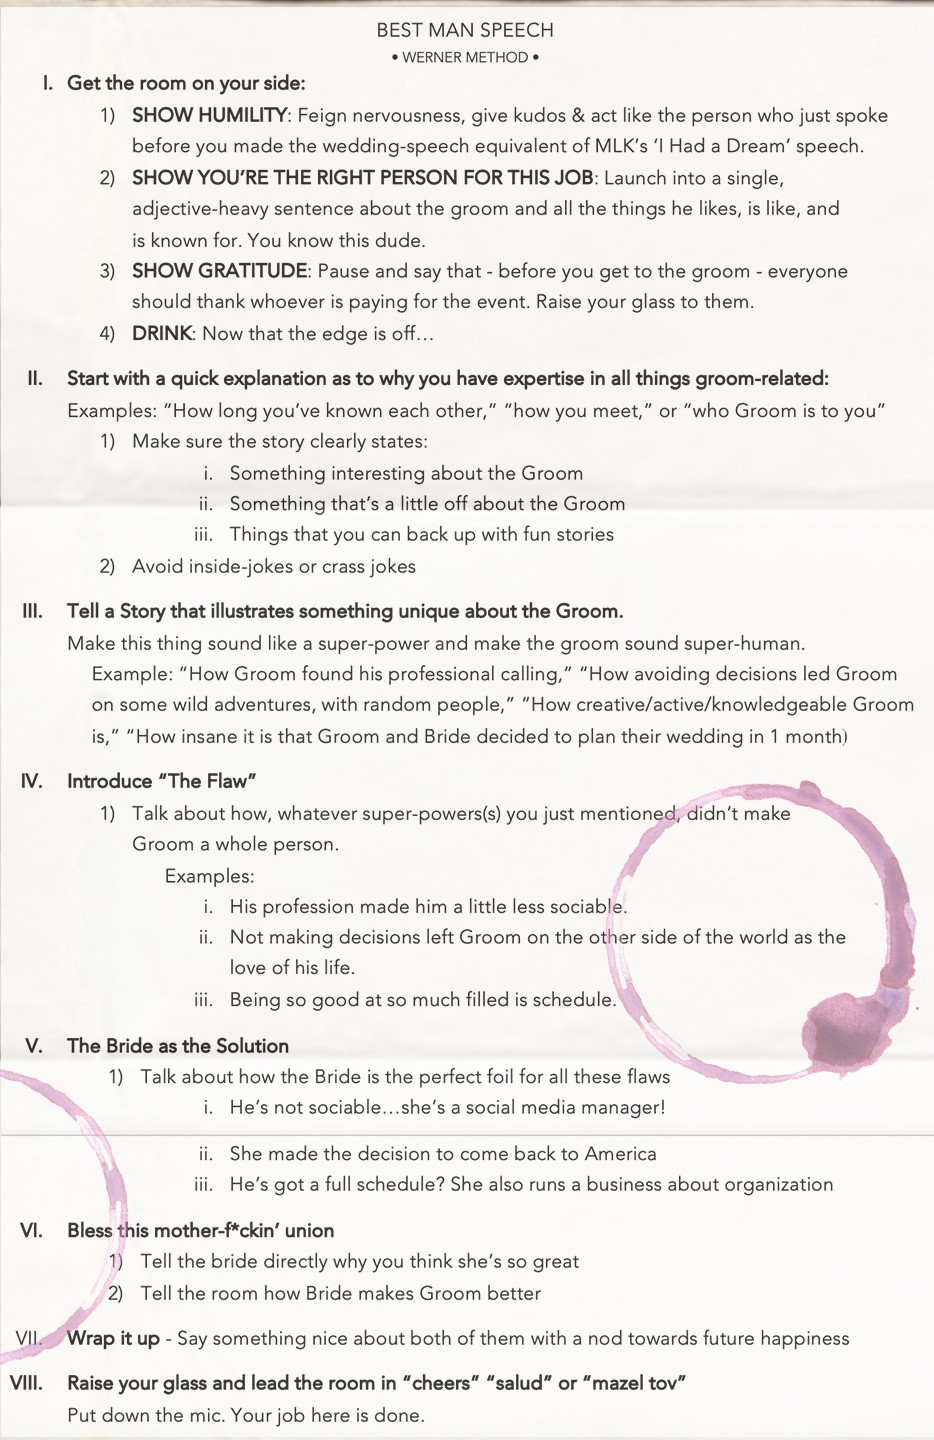 How to Write a Best Man Speech (Template w/Free Sample Text!)